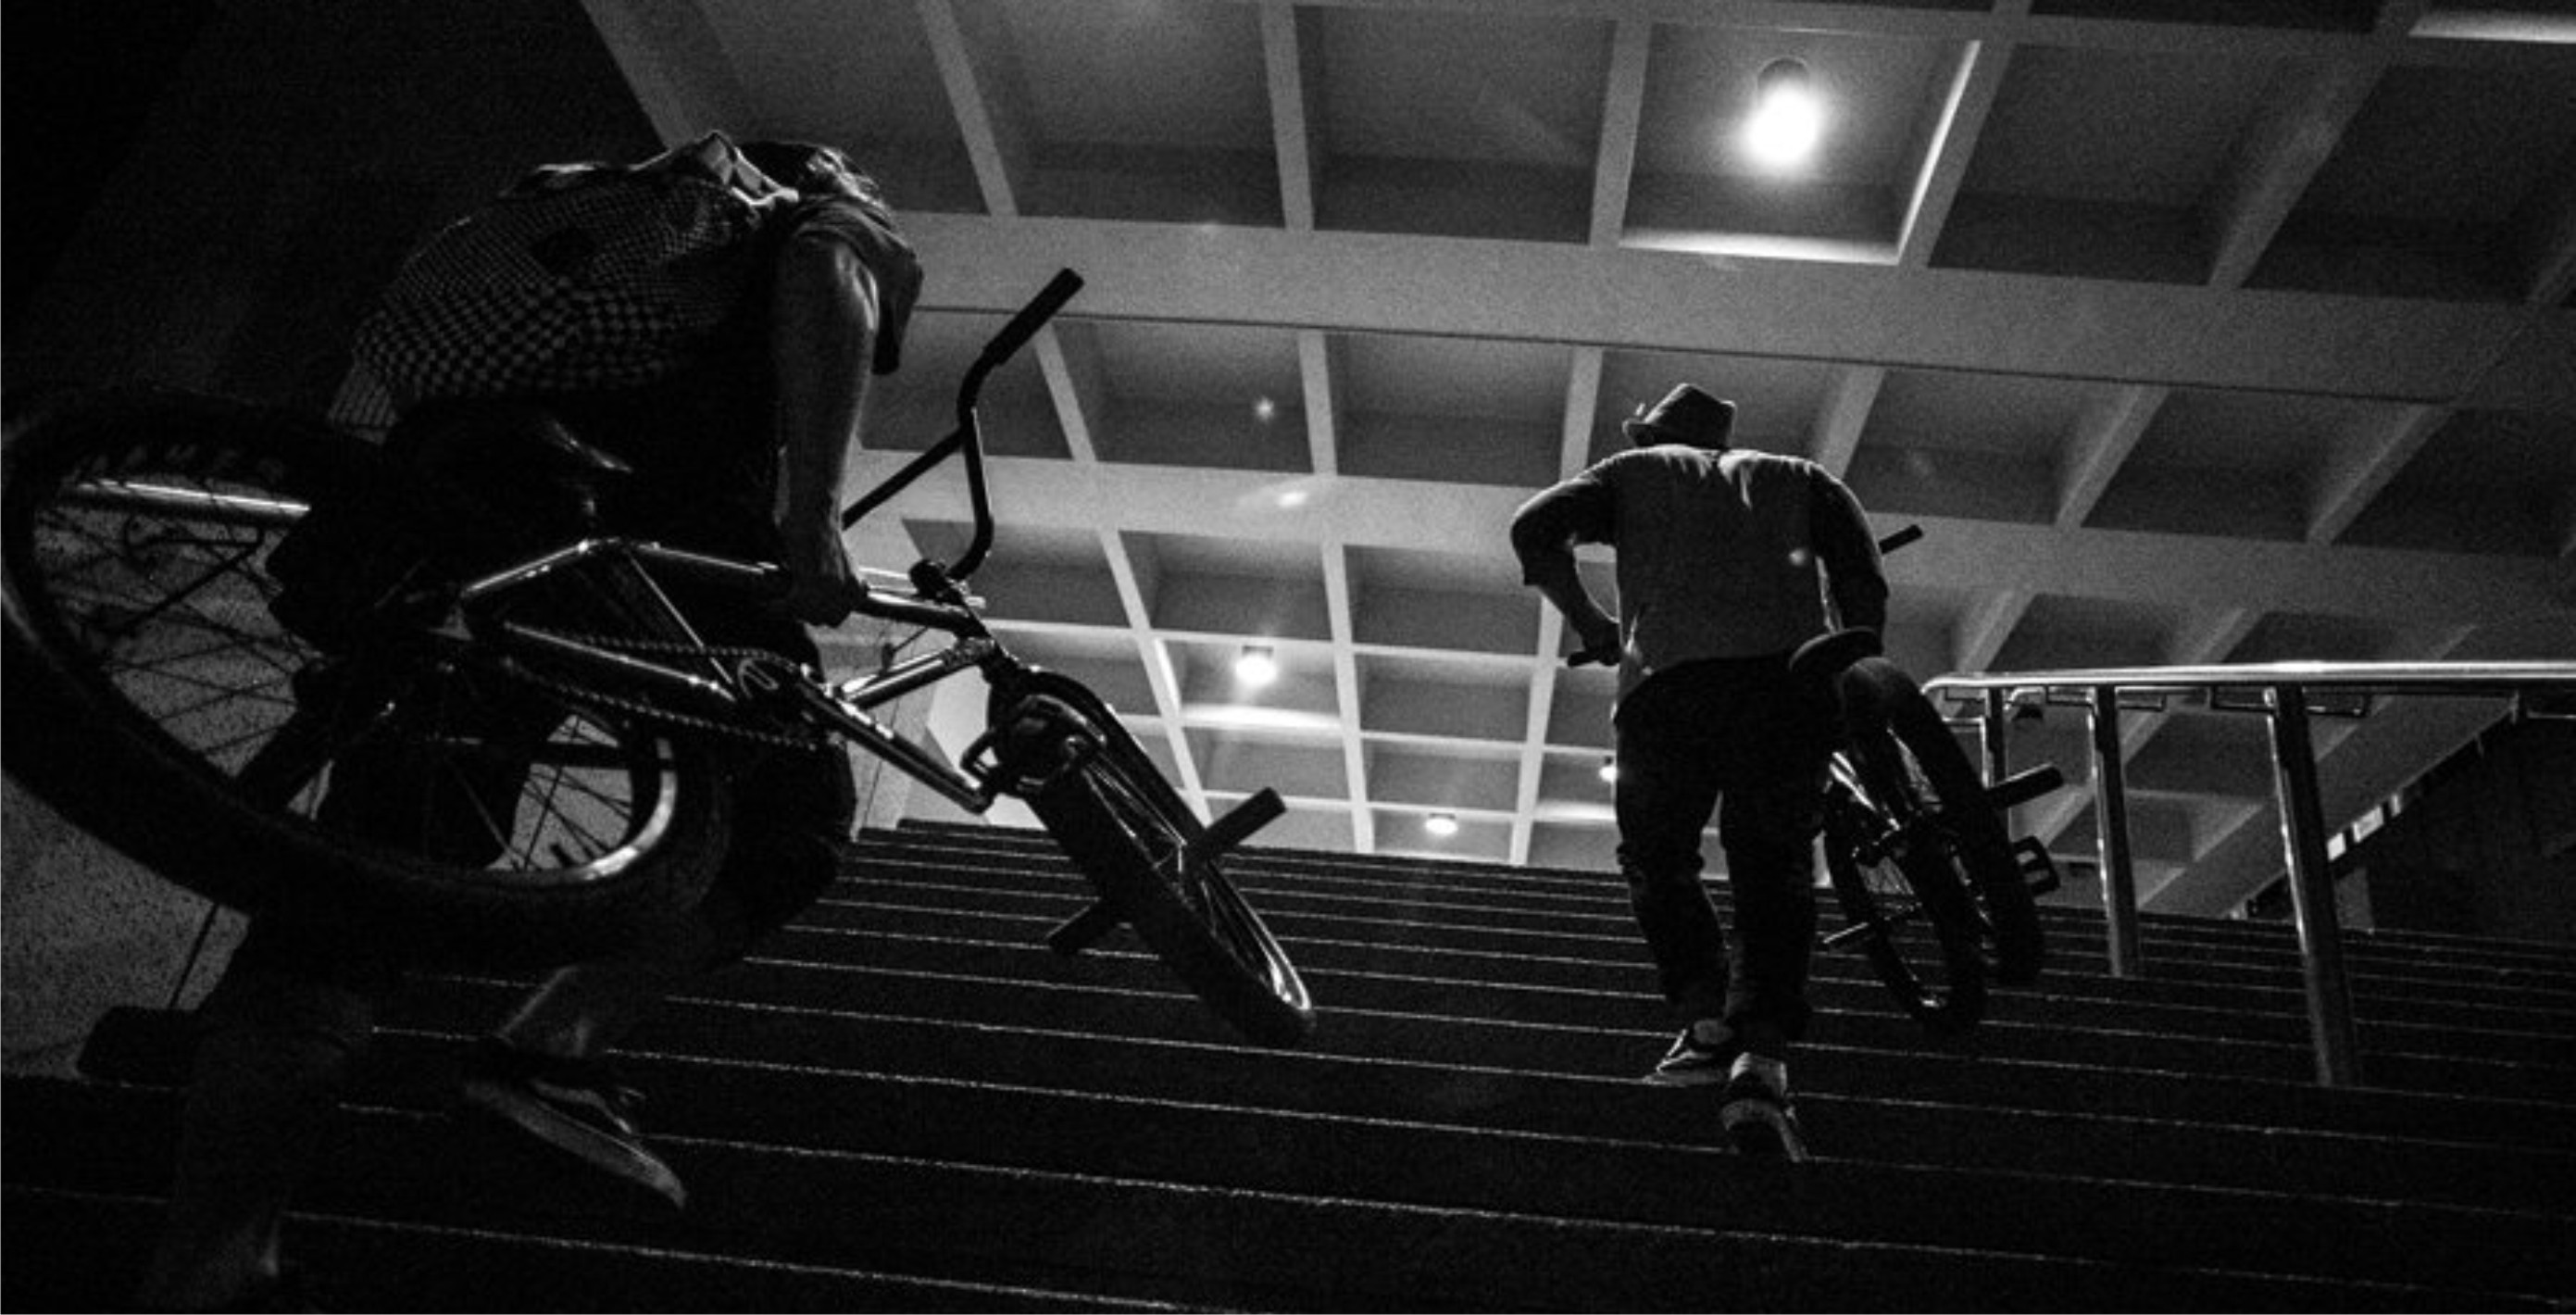 Brandon Blight and Jason Prins welcome to the Evals BMX team video